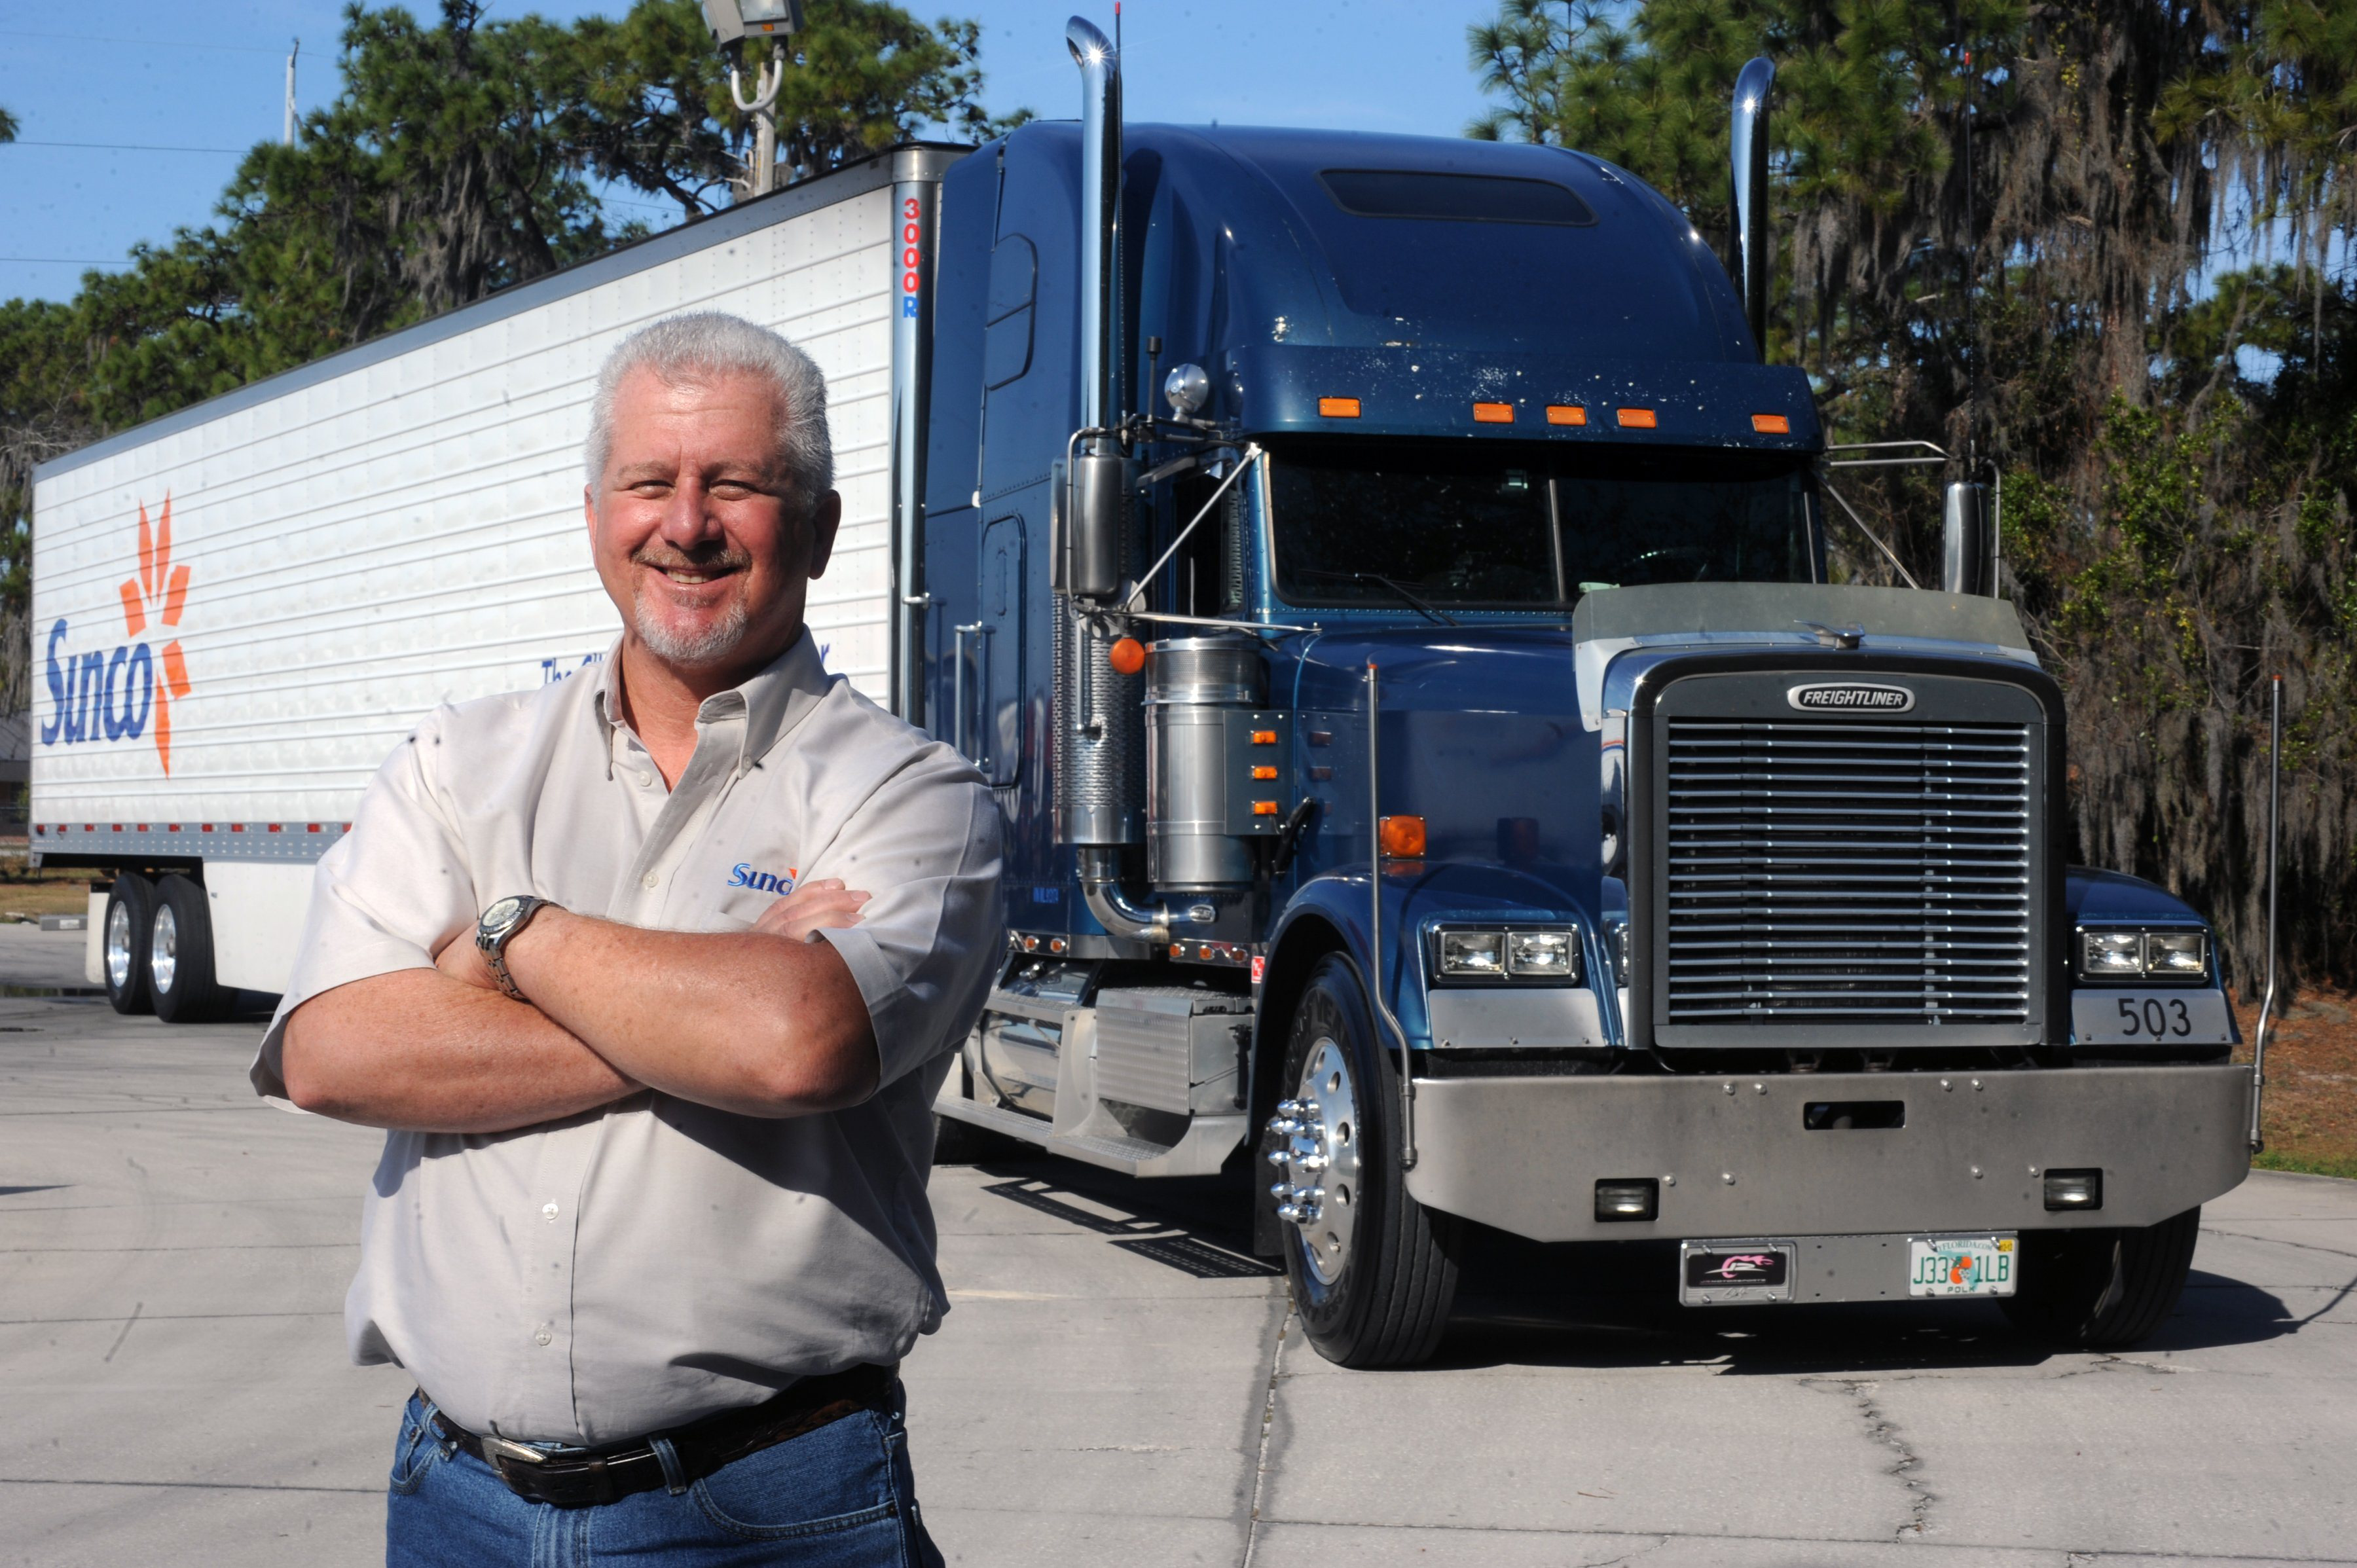 Sunco's Finest: Jimmy McSwain named April Owner-Operator of the Month